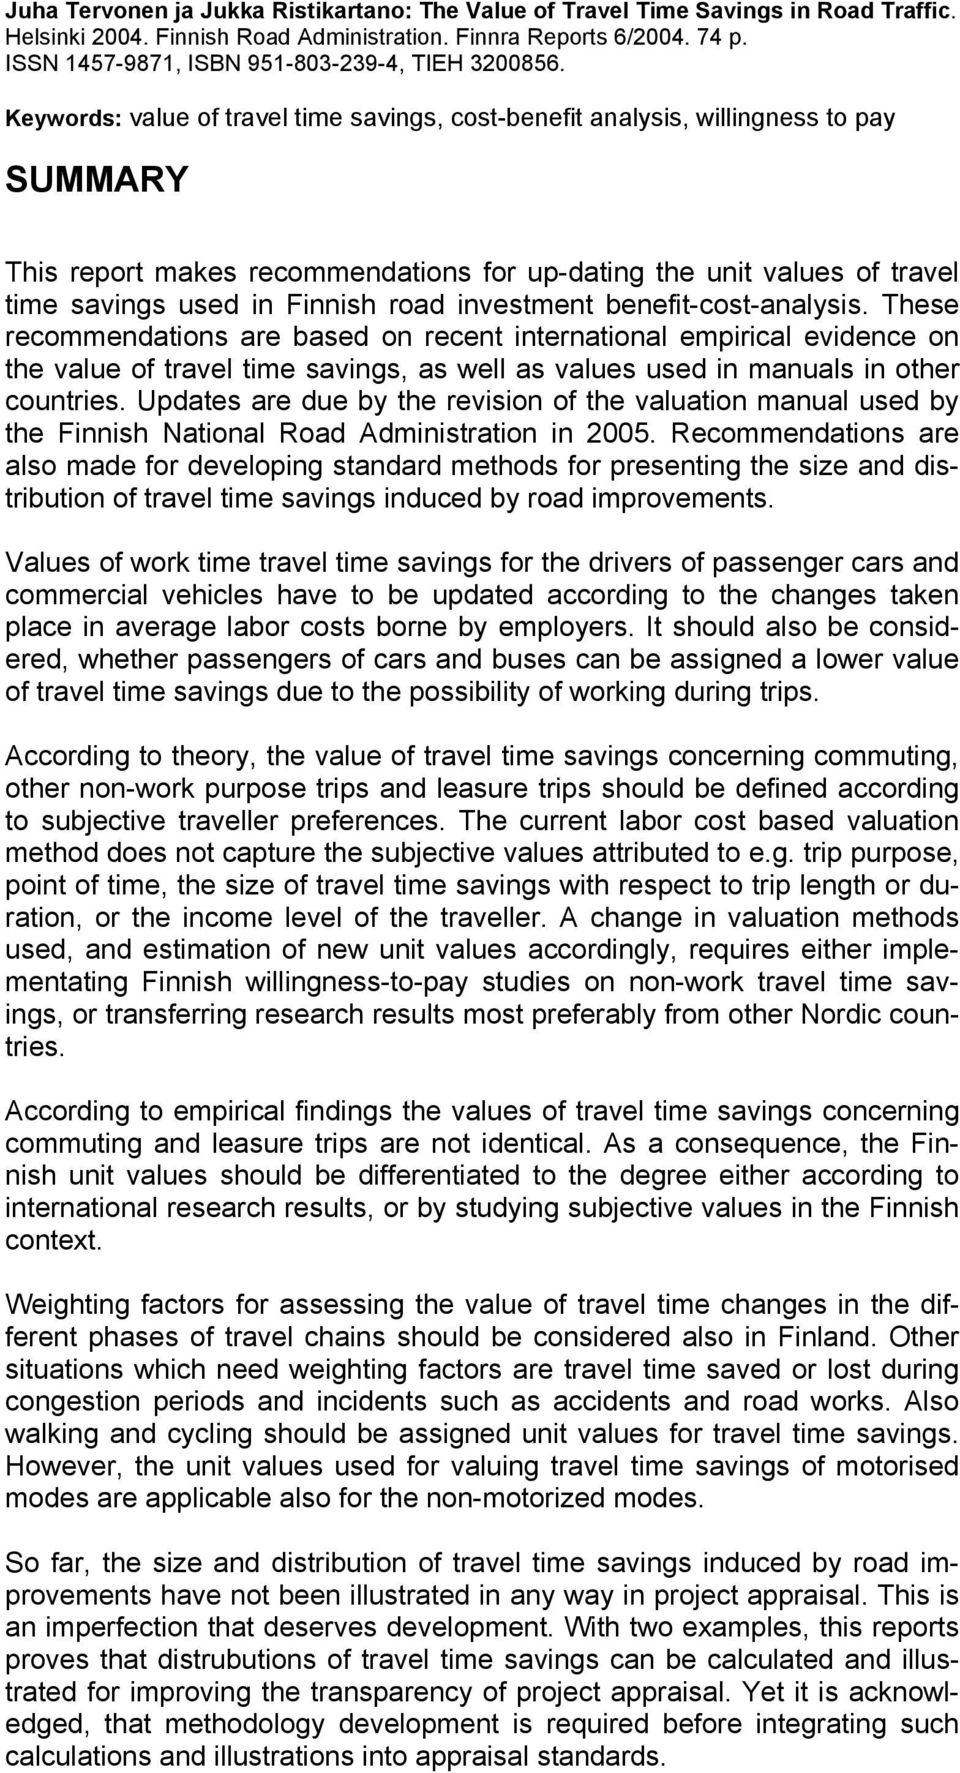 Keywords: value of travel time savings, cost-benefit analysis, willingness to pay SUMMARY This report makes recommendations for up-dating the unit values of travel time savings used in Finnish road